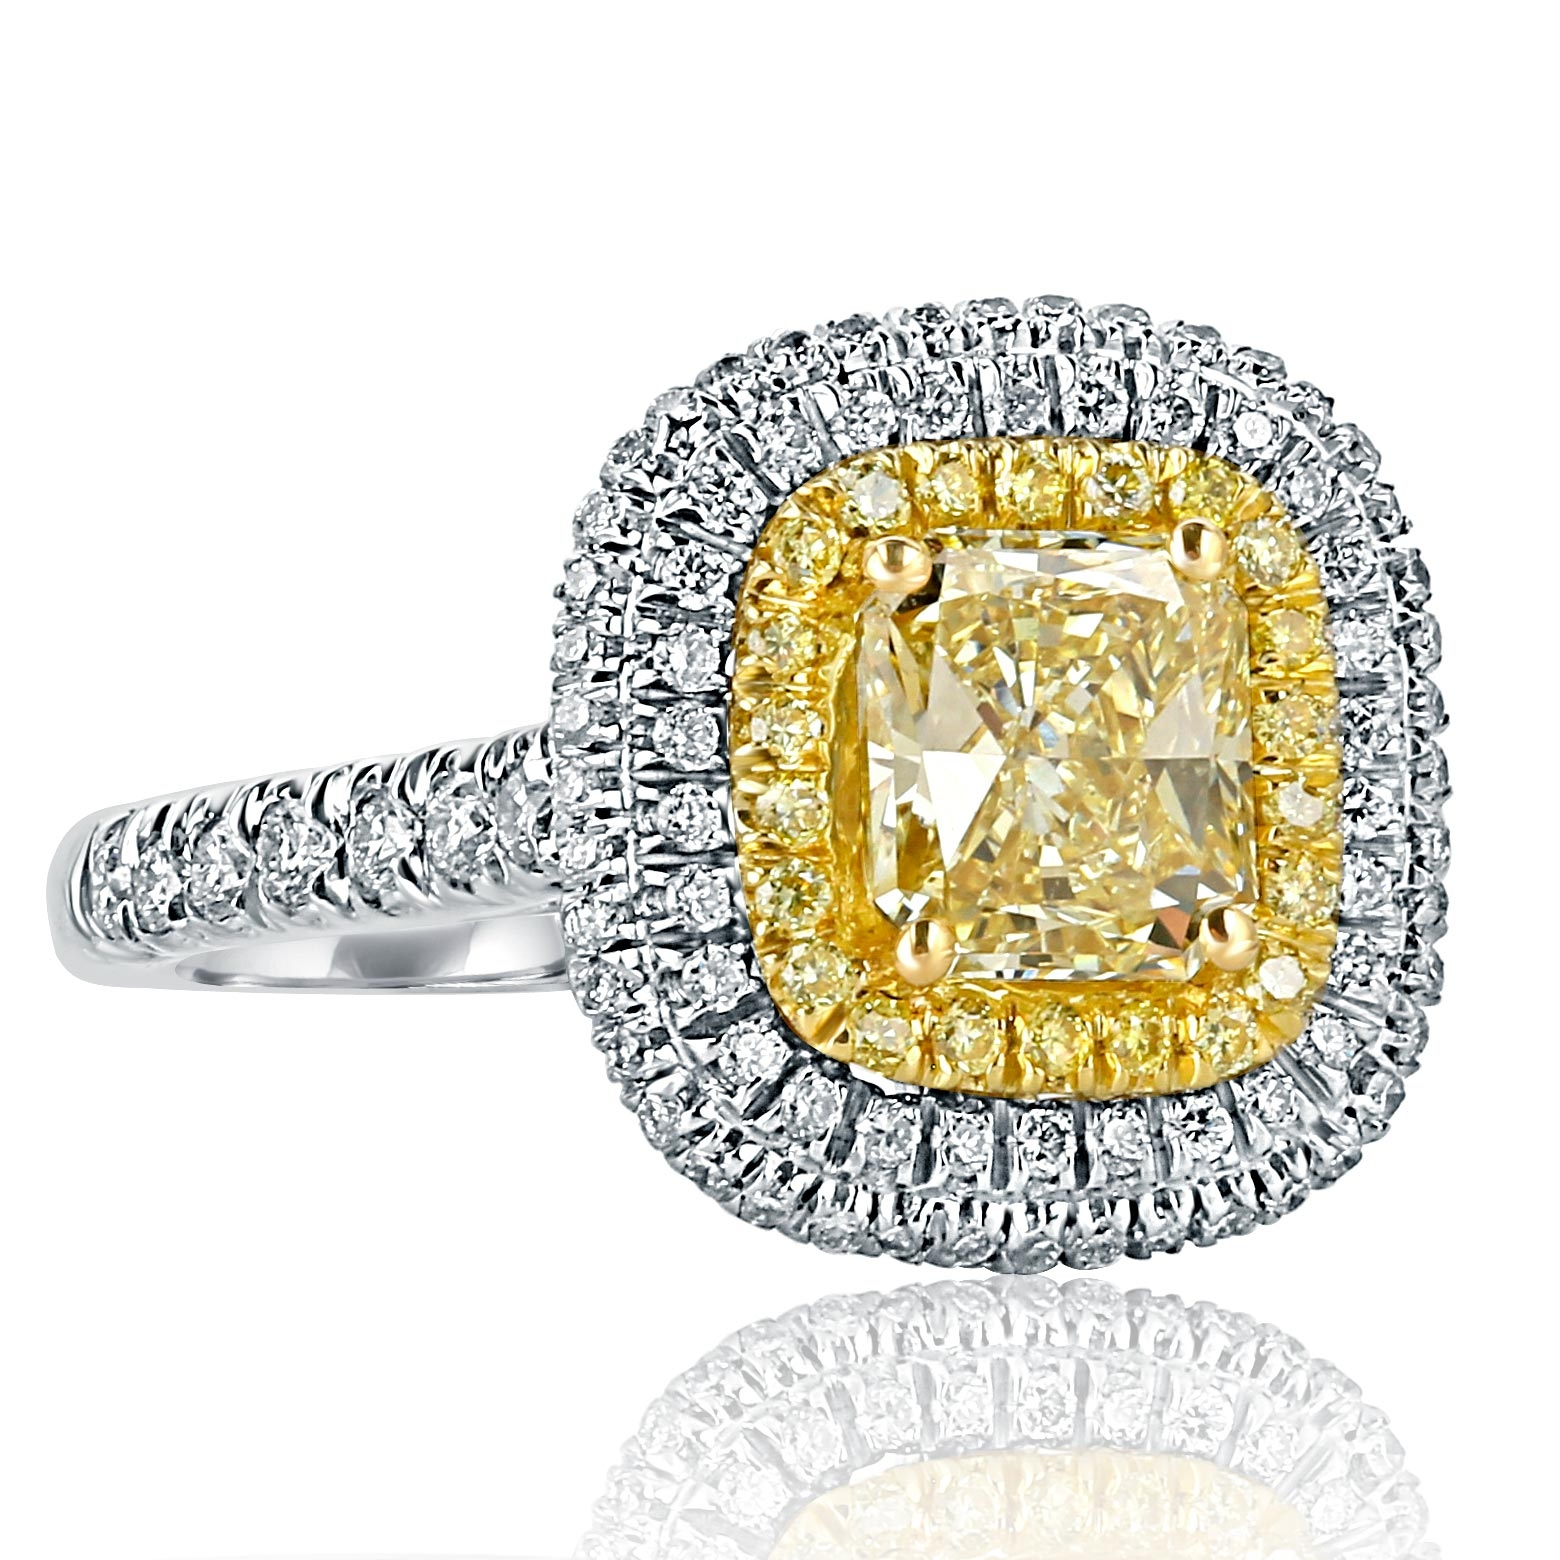 aa8ed8938a0a5 Radiant Cut Triple Halo Yellow 2.28 Ct Diamond Engagement Ring 18k ...